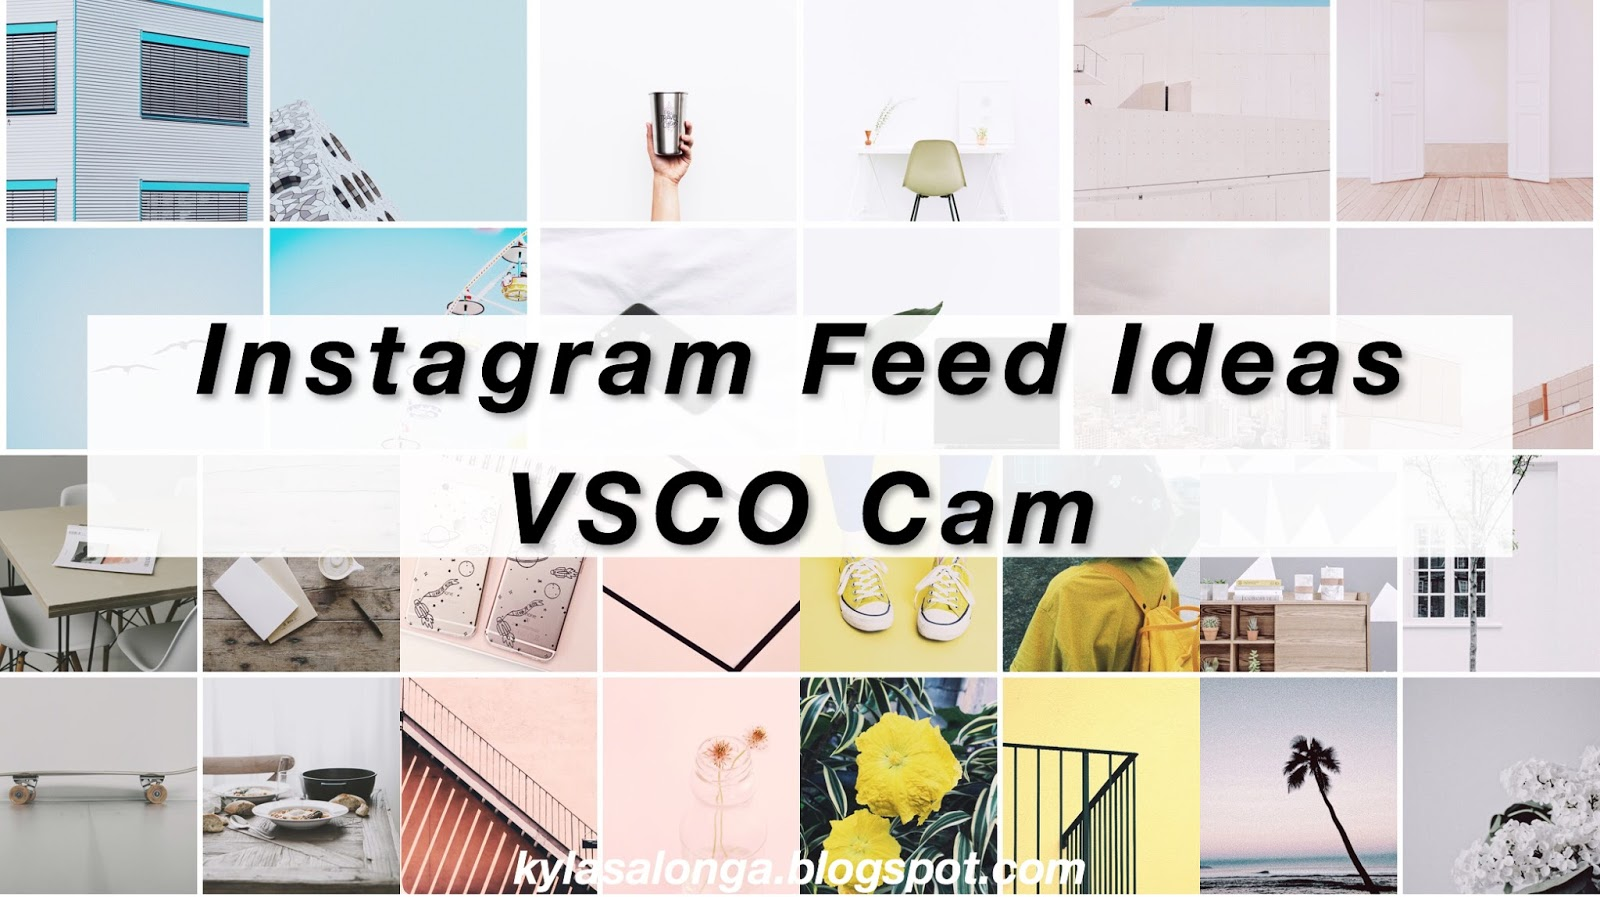 Feed Instagram: Instagram Feed Ideas